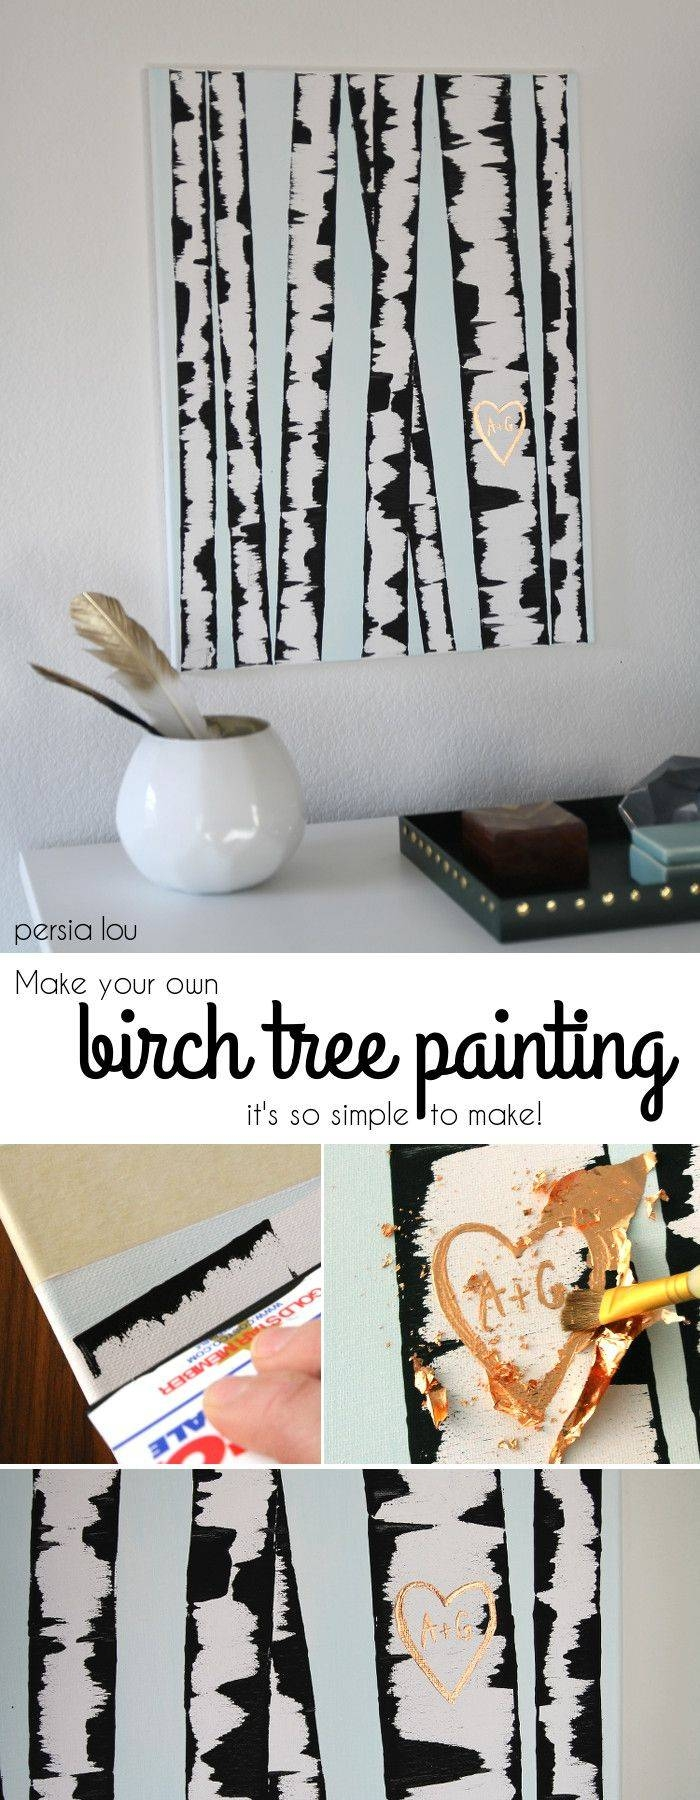 25+ Unique Diy Canvas Art Ideas On Pinterest | Diy Canvas, Canvas With Most Up To Date Diy Pinterest Canvas Art (View 7 of 25)